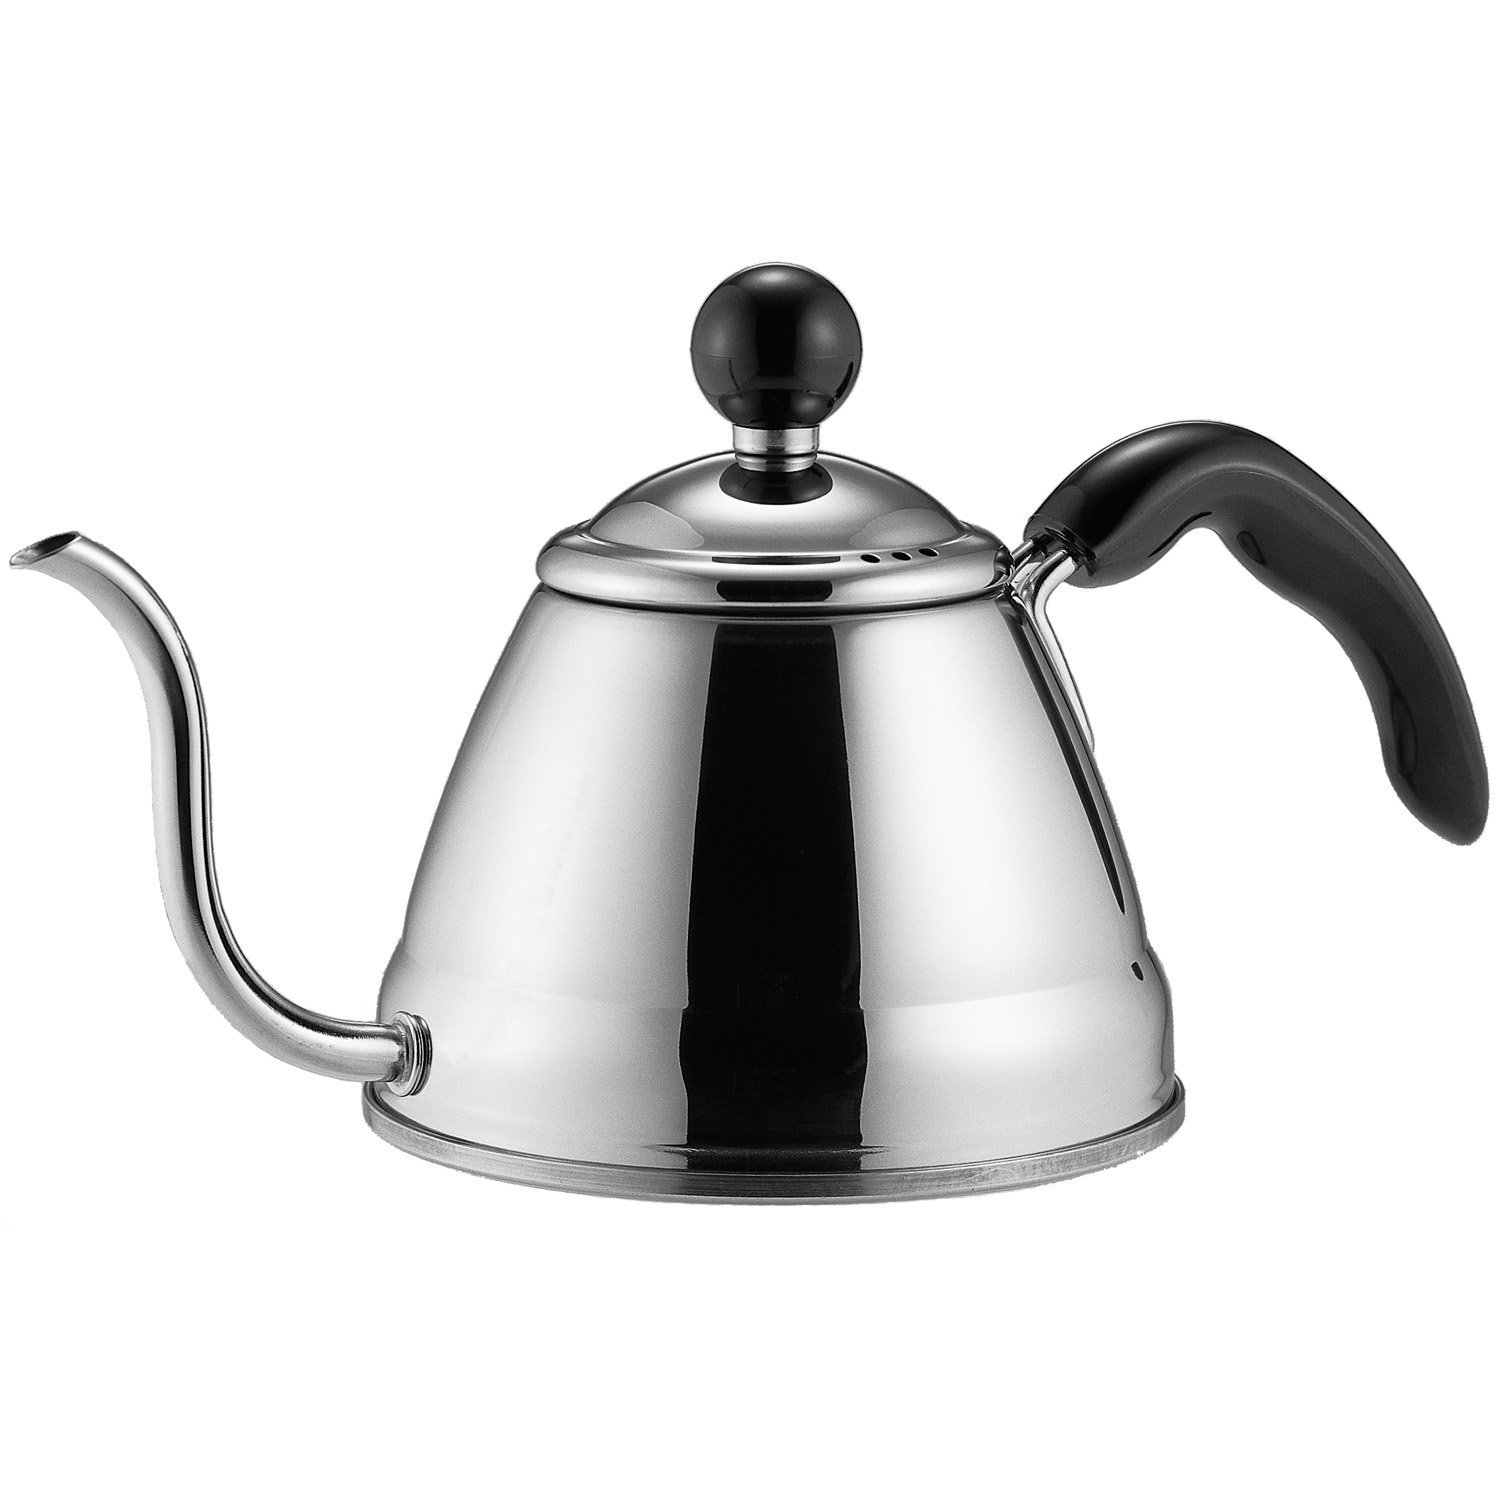 Amazing tea kettles for kitchen and dining room with copper tea kettle